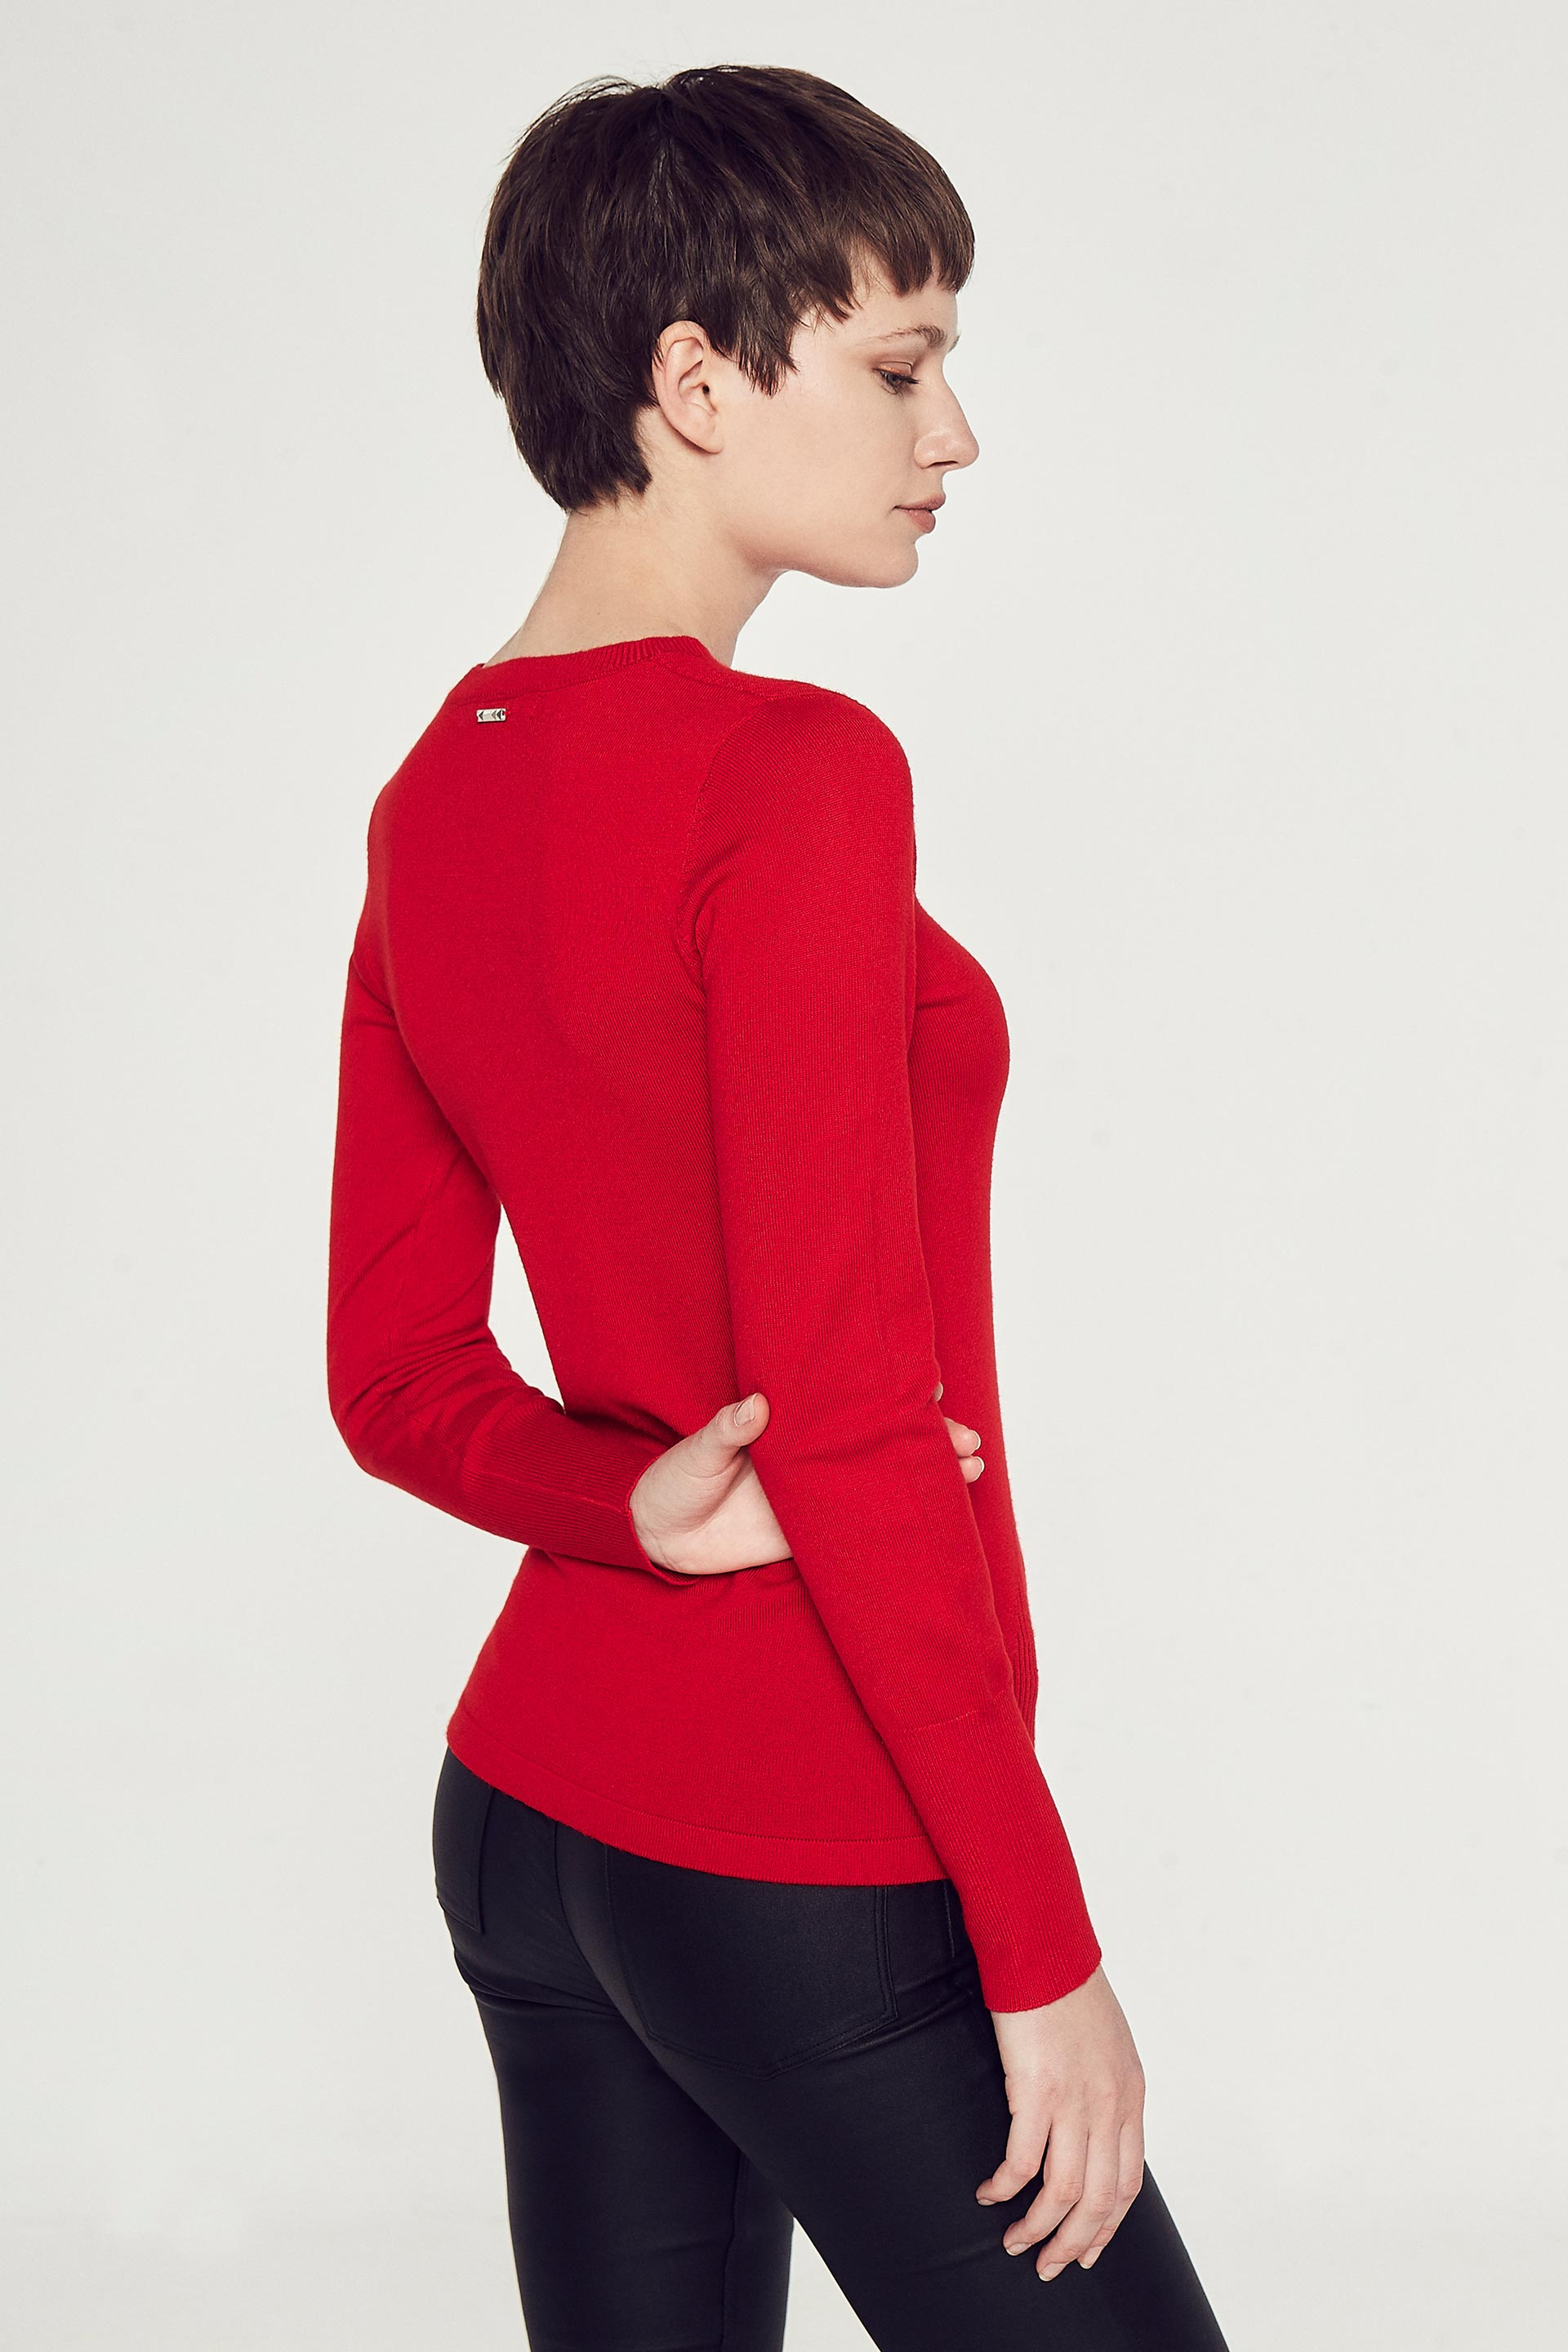 markova_sweater-muster_53-24-2020__picture-30157